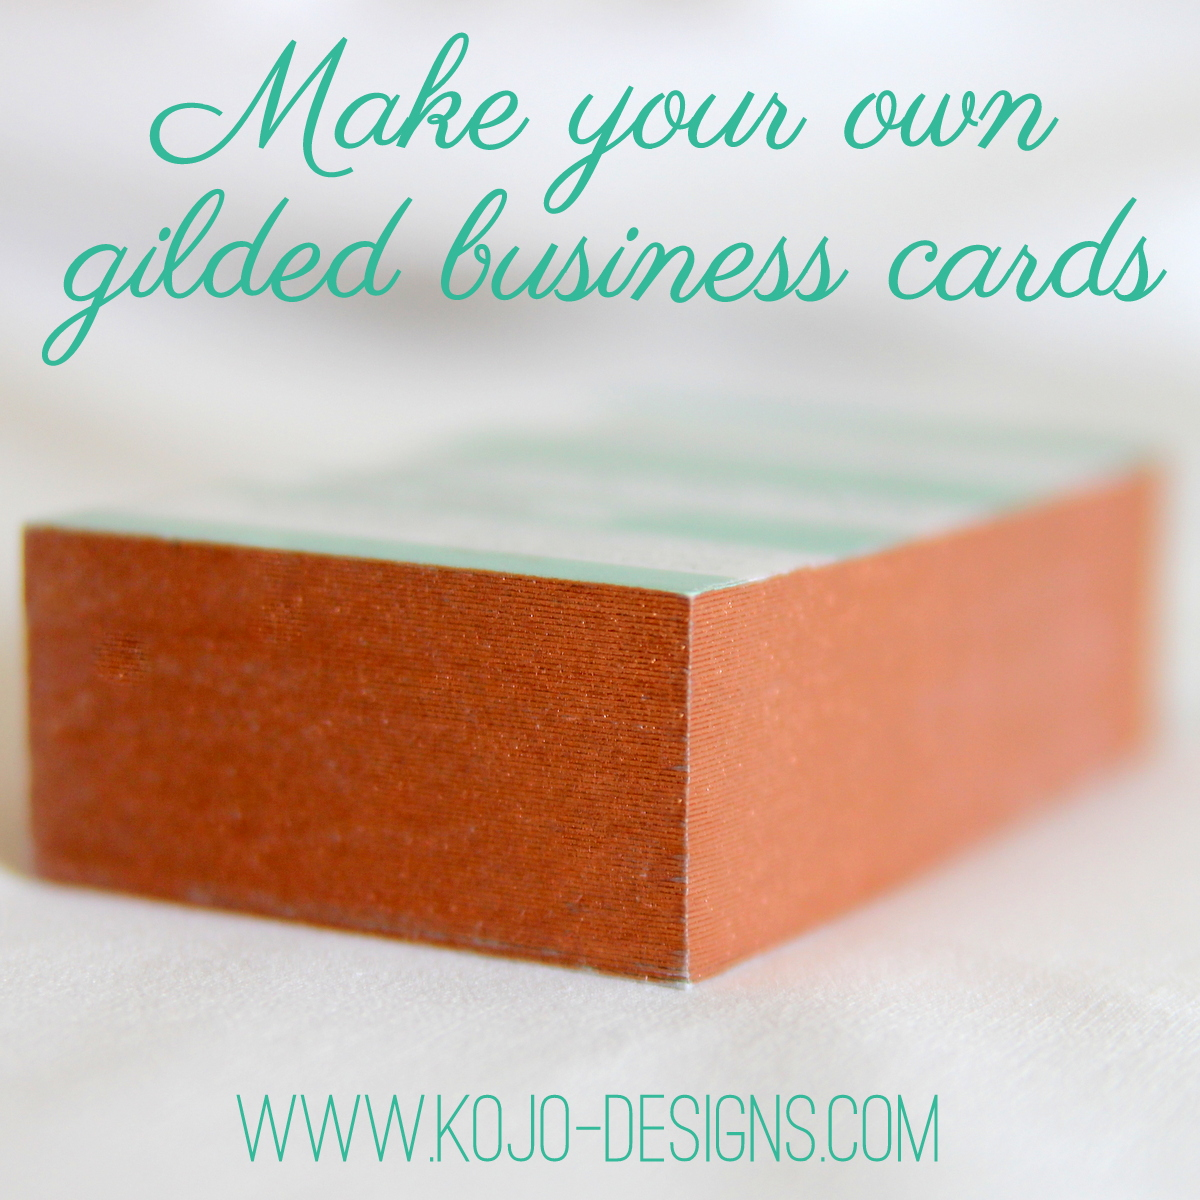 make your own gilded business cards